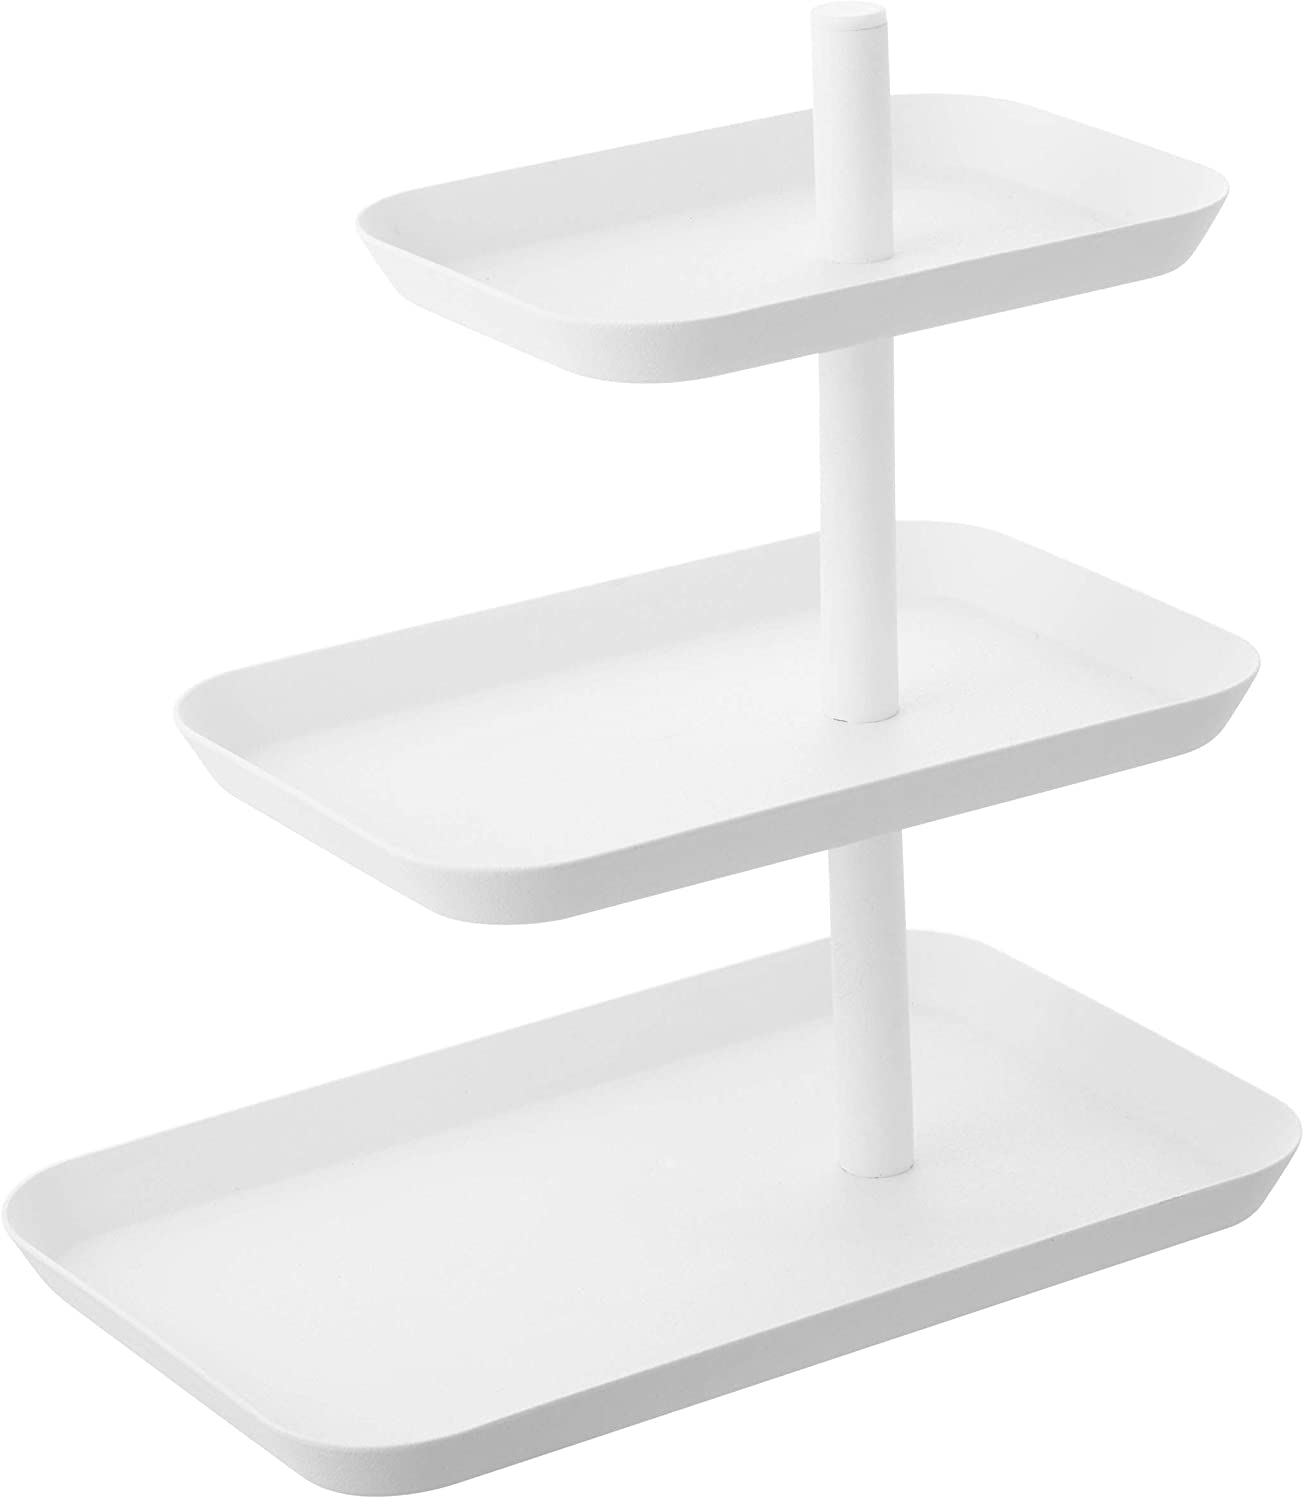 Yamazaki Home 3-Tier Serving Stand-Appetizer Tray Organizer for Party Or Kitchen, One Size, White